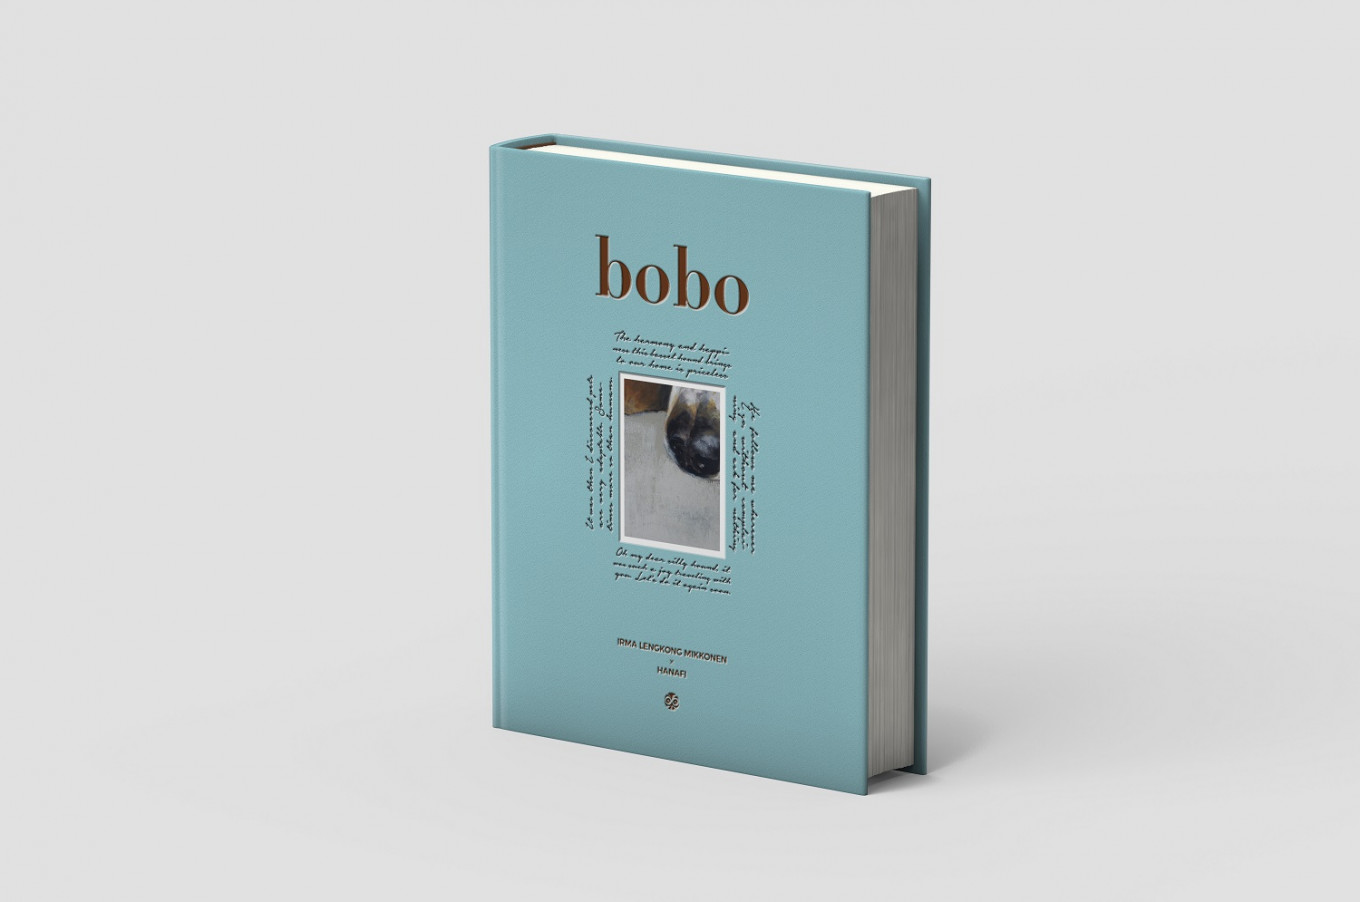 Published by Afterhours Books, 'Bobo: The Traveling Hound' comprises travel stories as well as artworks by abstract artist Hanafi.